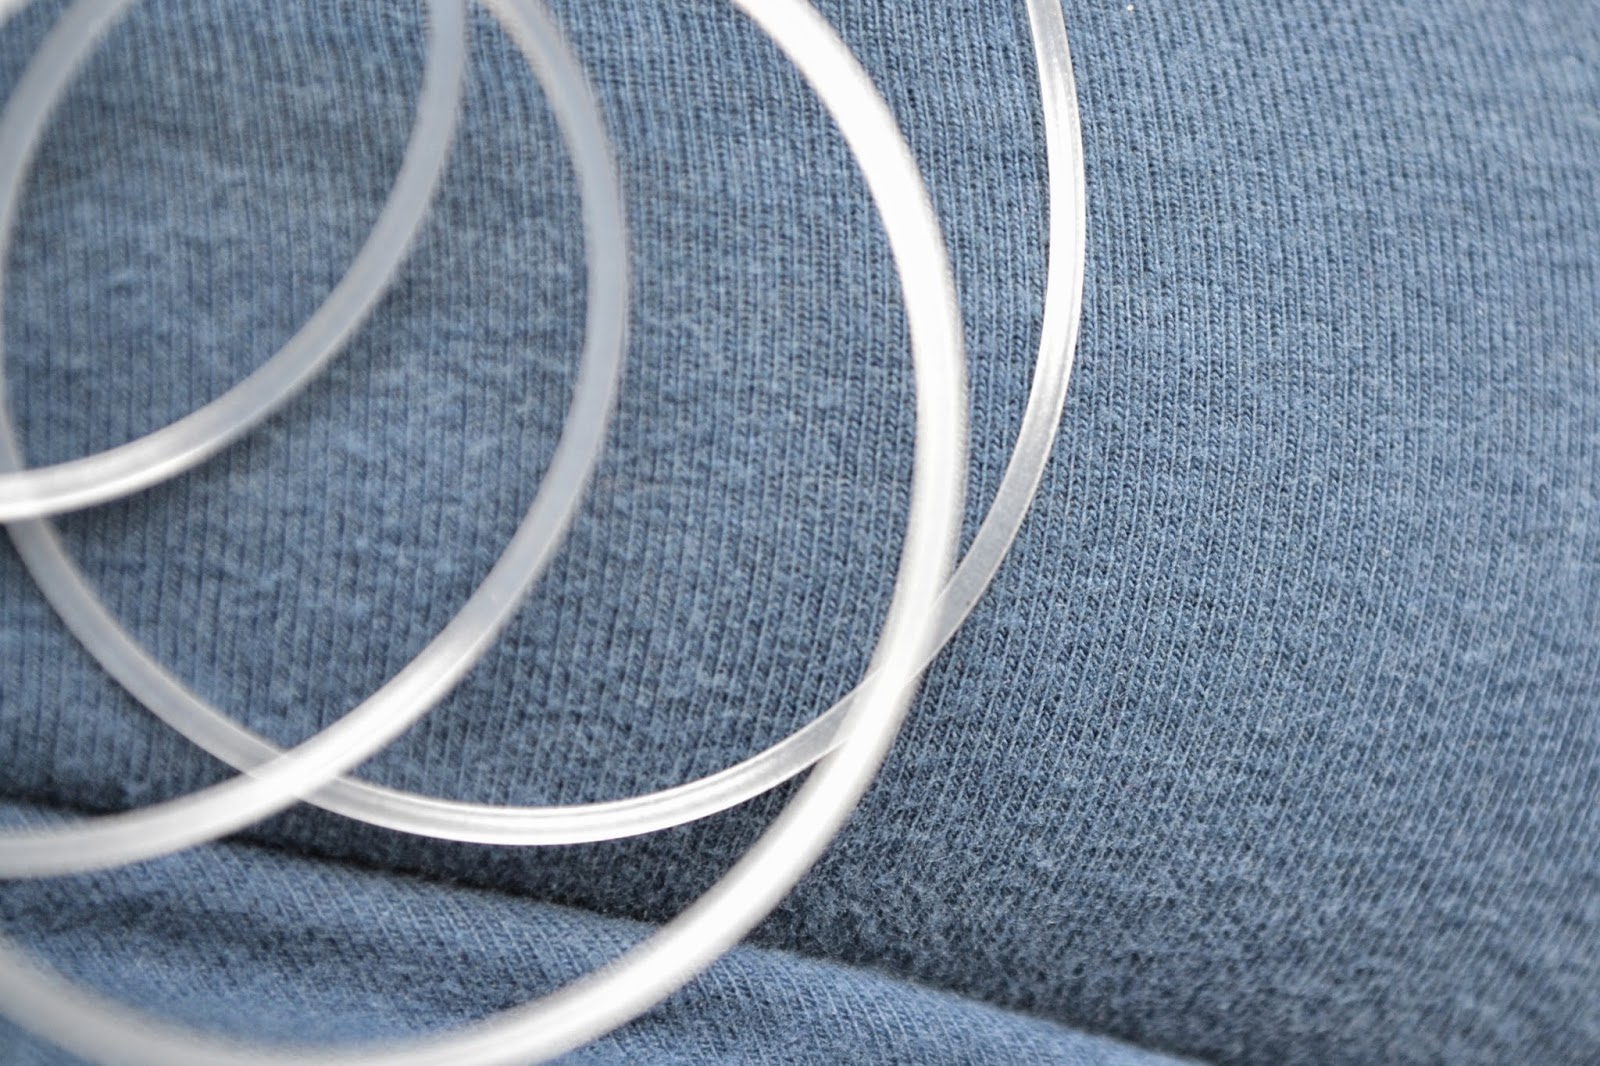 Close-up of insulin pump tubing.